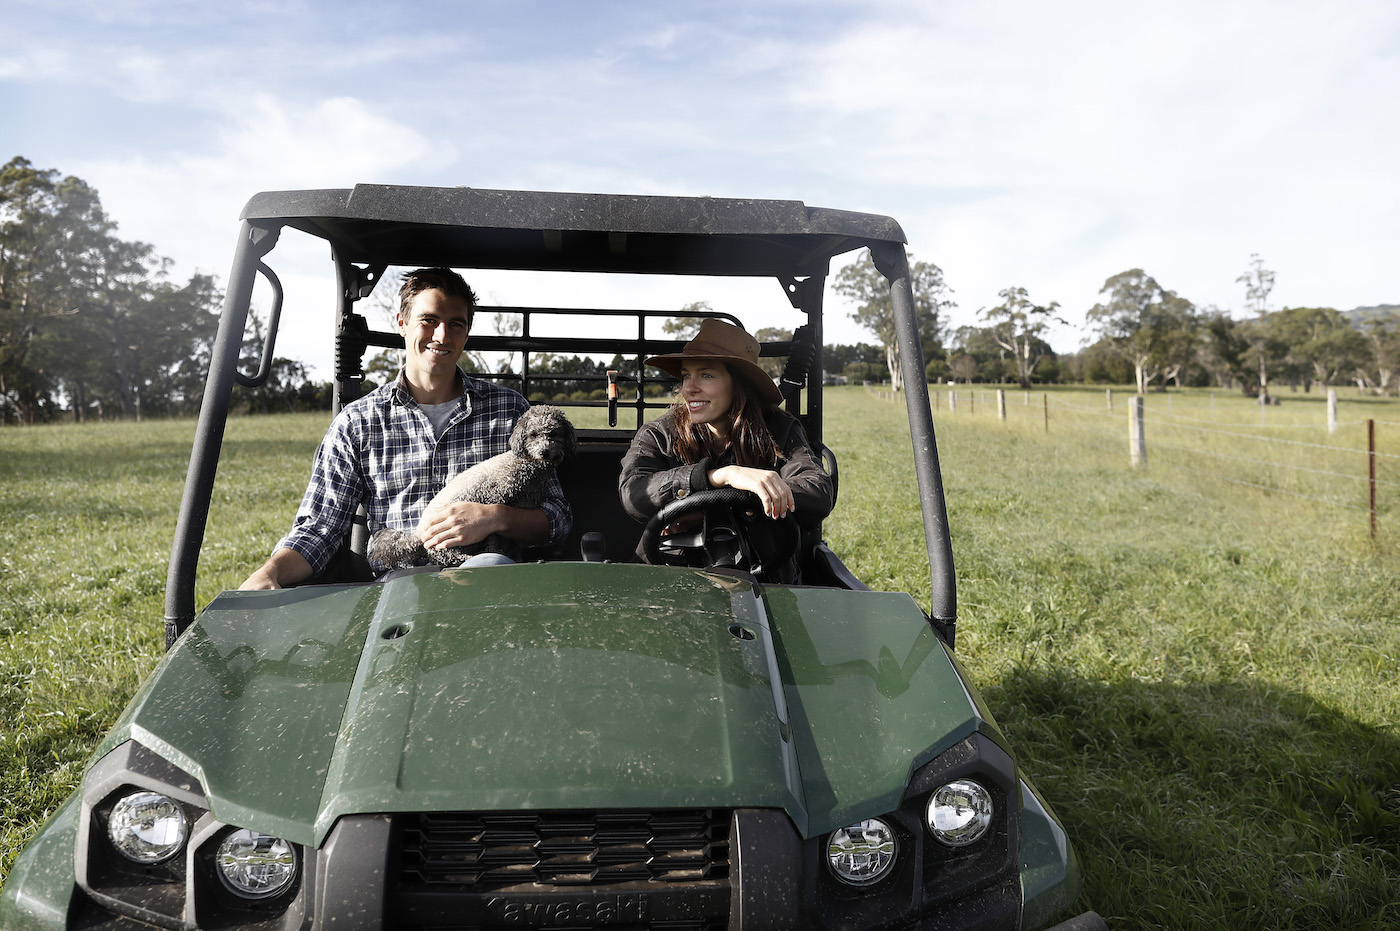 Norman has the run of Pat Cummins' massive Southern Highlands estate south-west of Sydney, though he would rather take the farm buggy, thank you very much